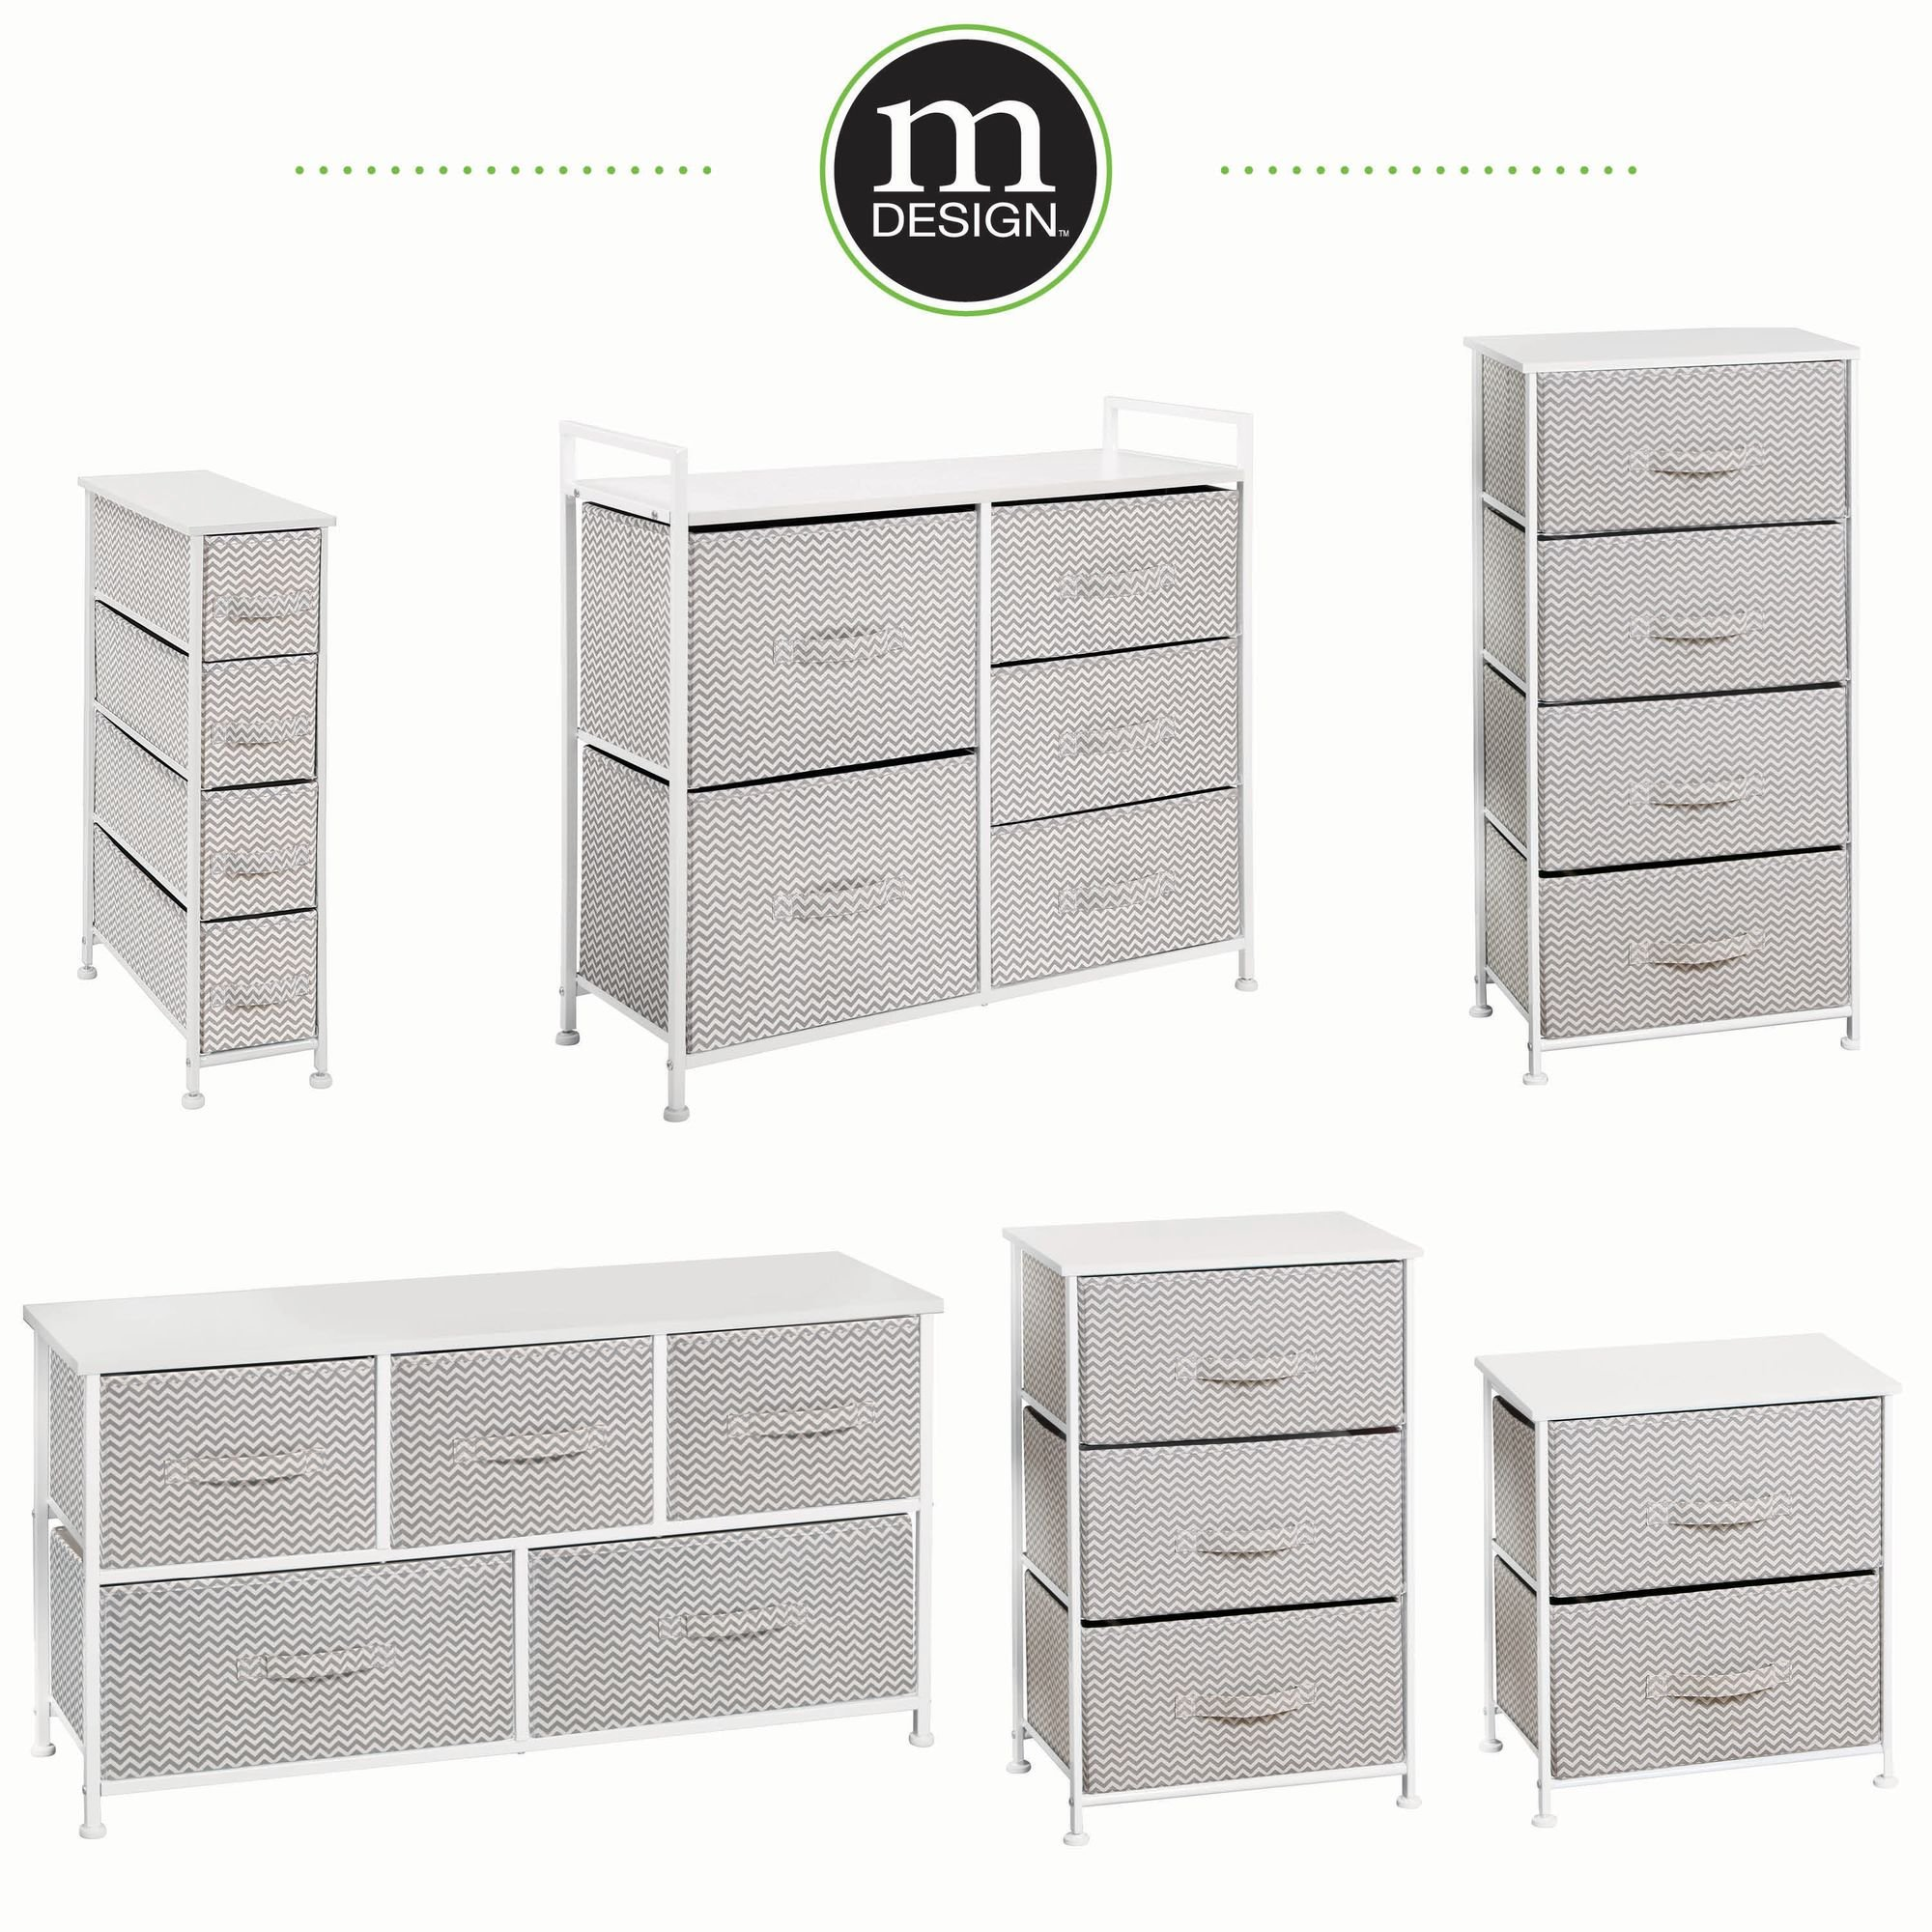 mDesign Vertical Furniture Dresser Storage Tower - Sturdy Steel Frame, Wood Top, Easy Pull Fabric Bins - Organizer for Bedroom, Hallway, Entryway, Closets - Chevron - 4 Drawers, Taupe/Natural/White by mDesign (Image #5)